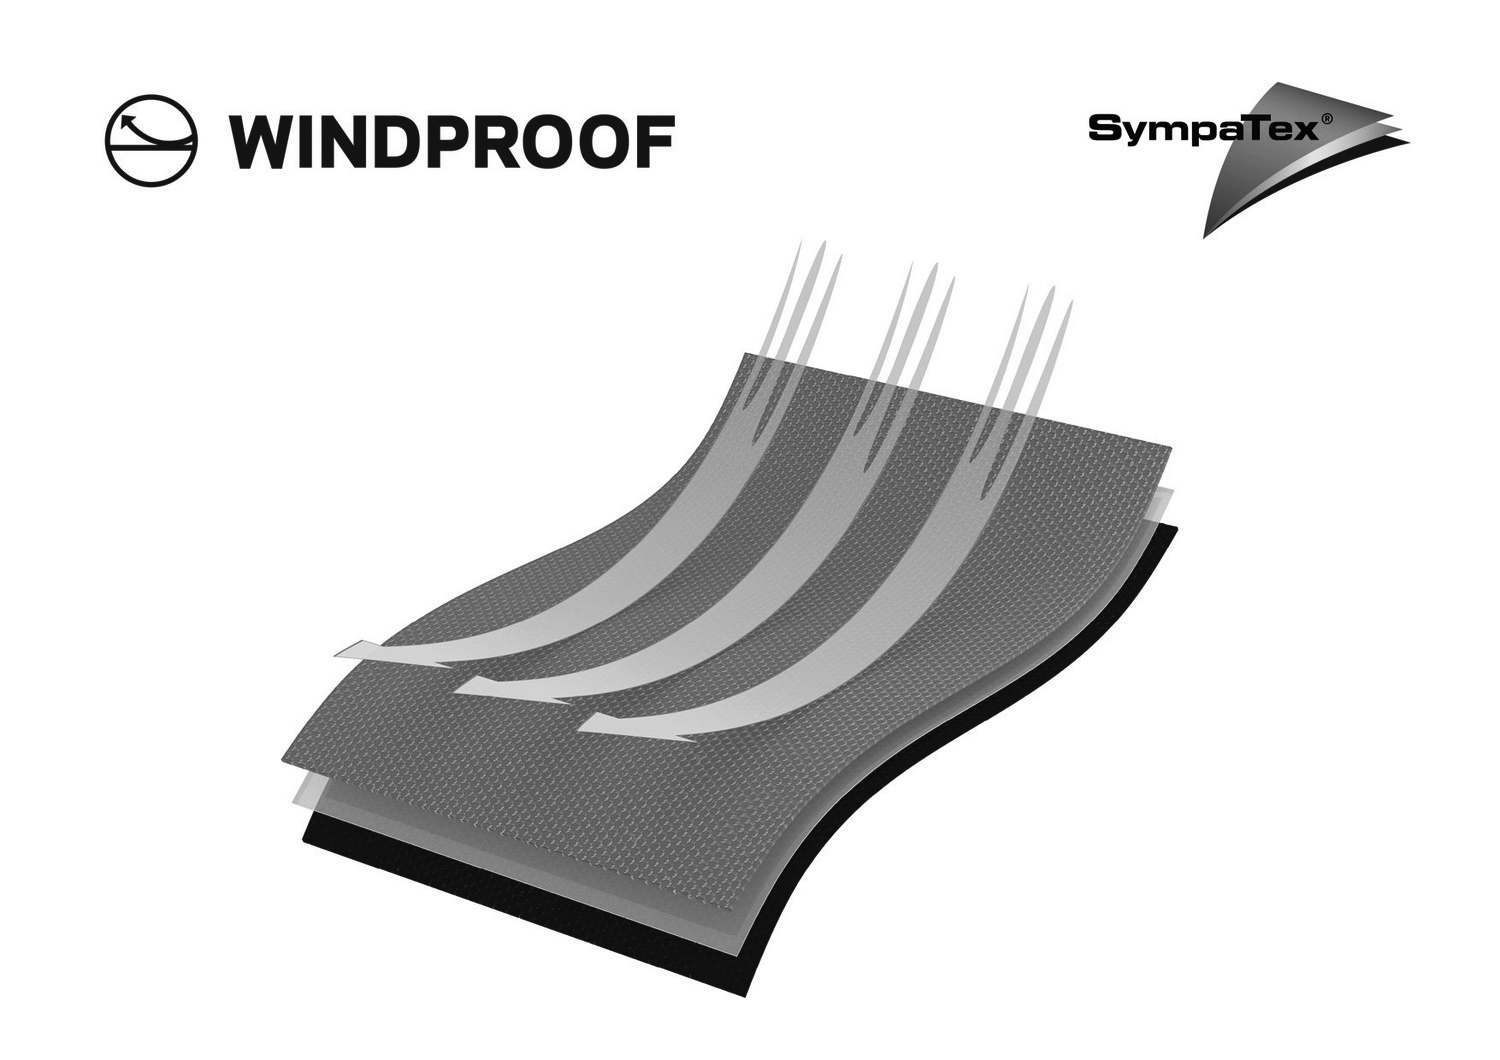 3D_Grafiken_Windproof_e_150dpi.jpg